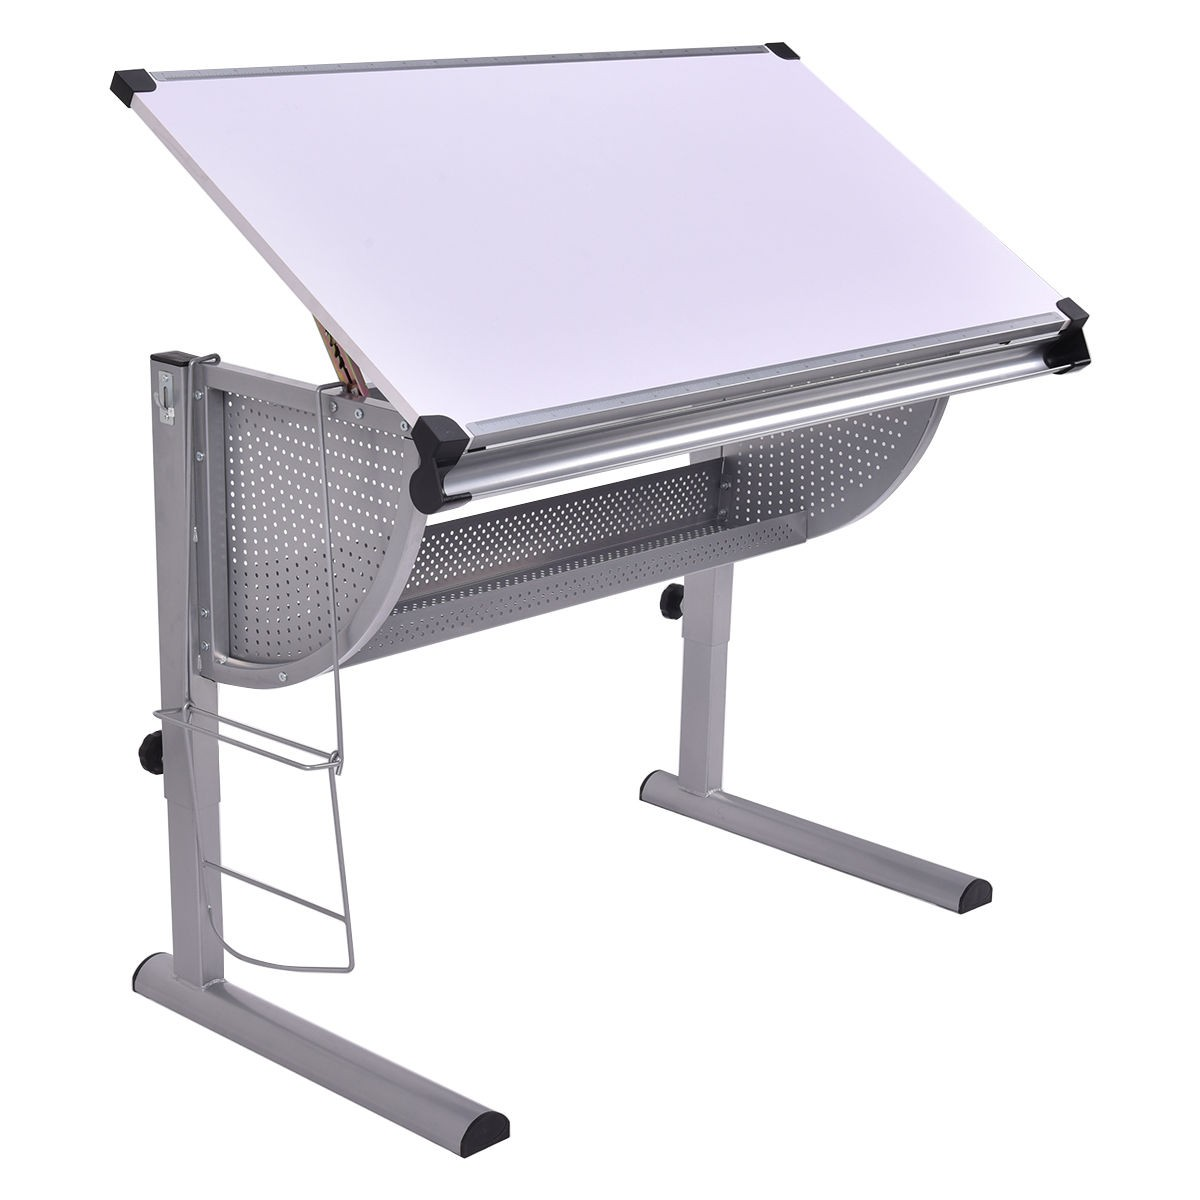 Drafting table drawing desk adjustable art craft hobby for Table cuisine 110 x 80